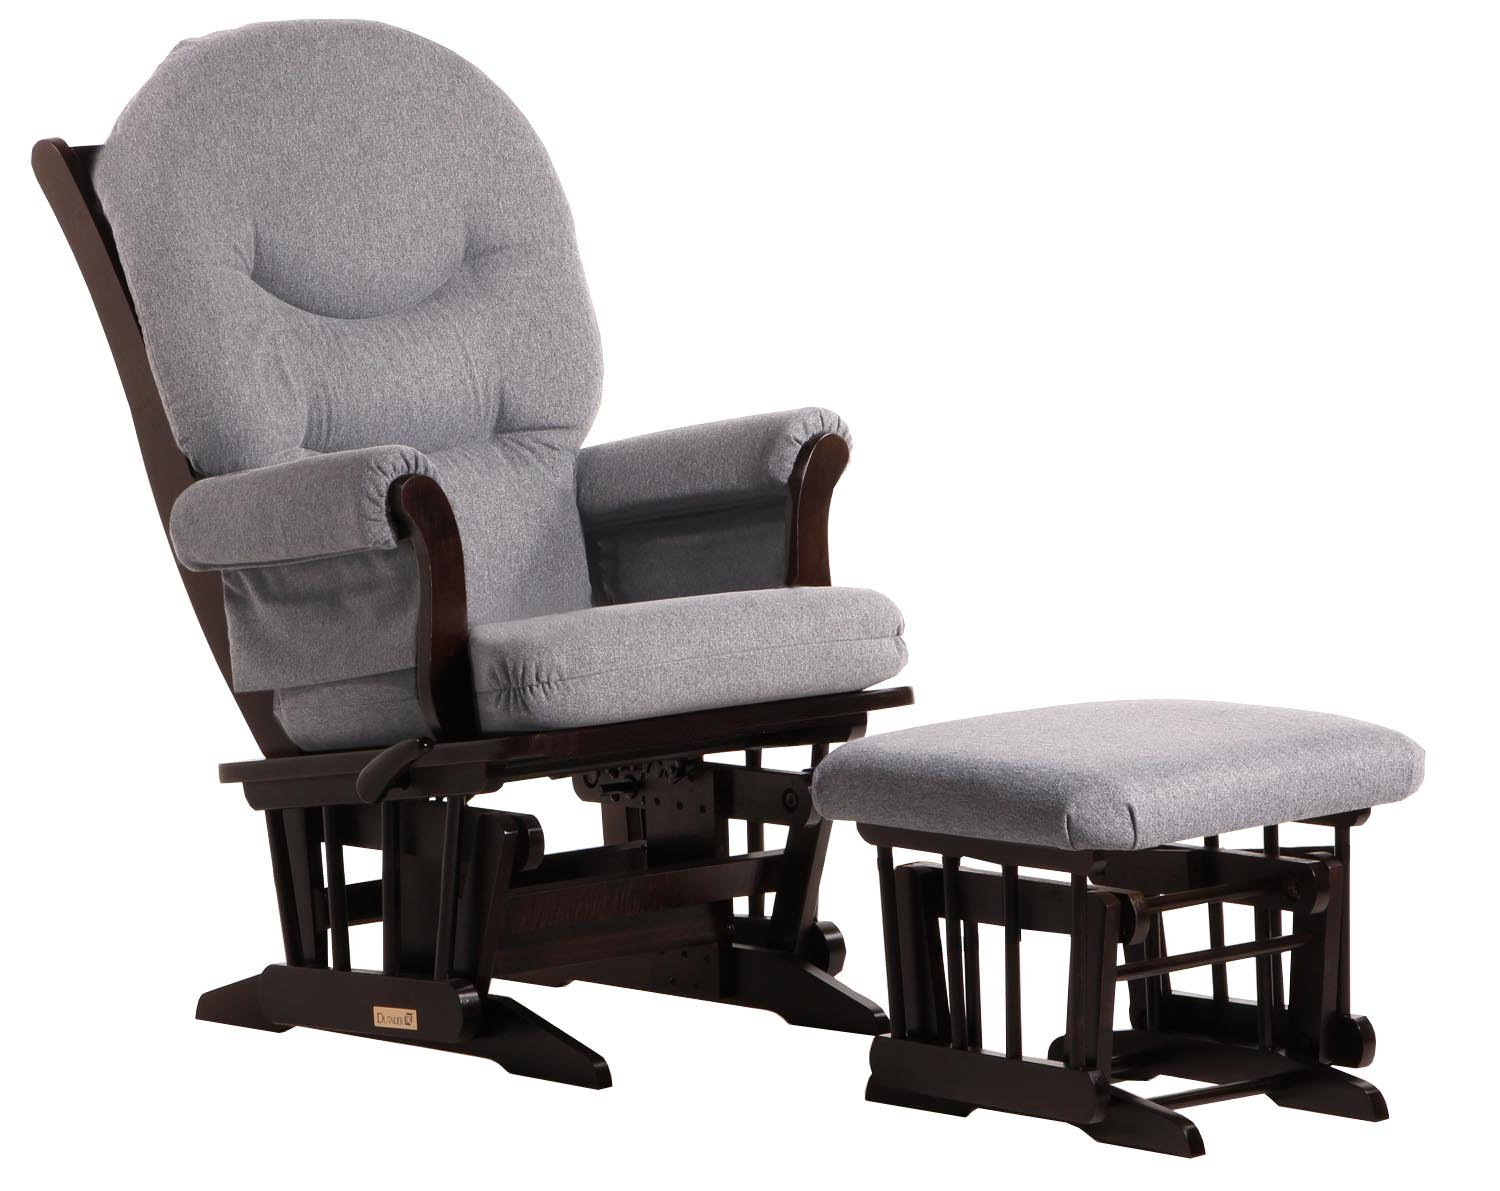 amazoncom dutailier sleigh recline and ottoman combo grey baby